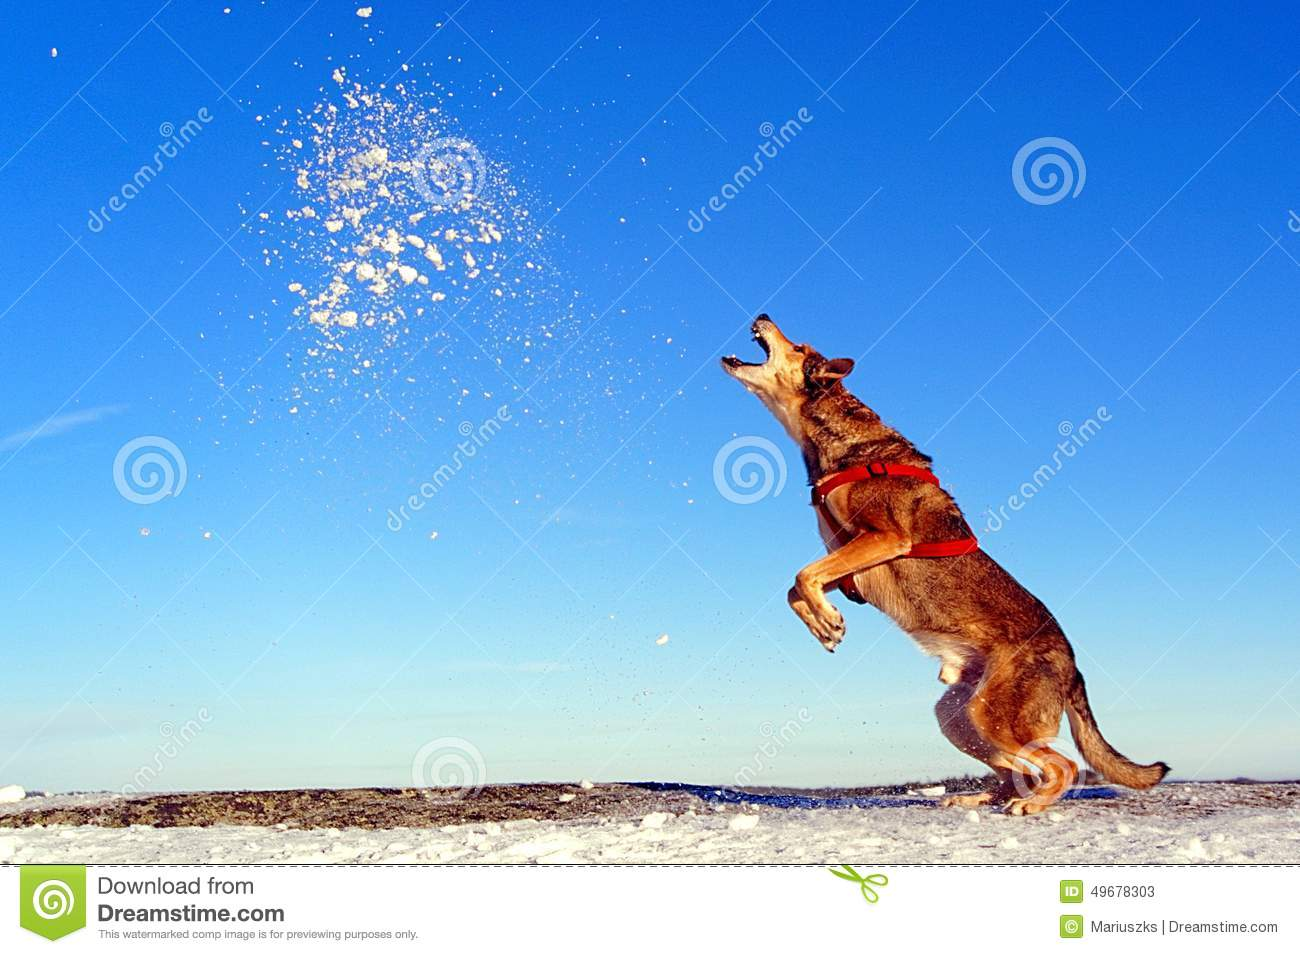 The dog jumps up into the snow